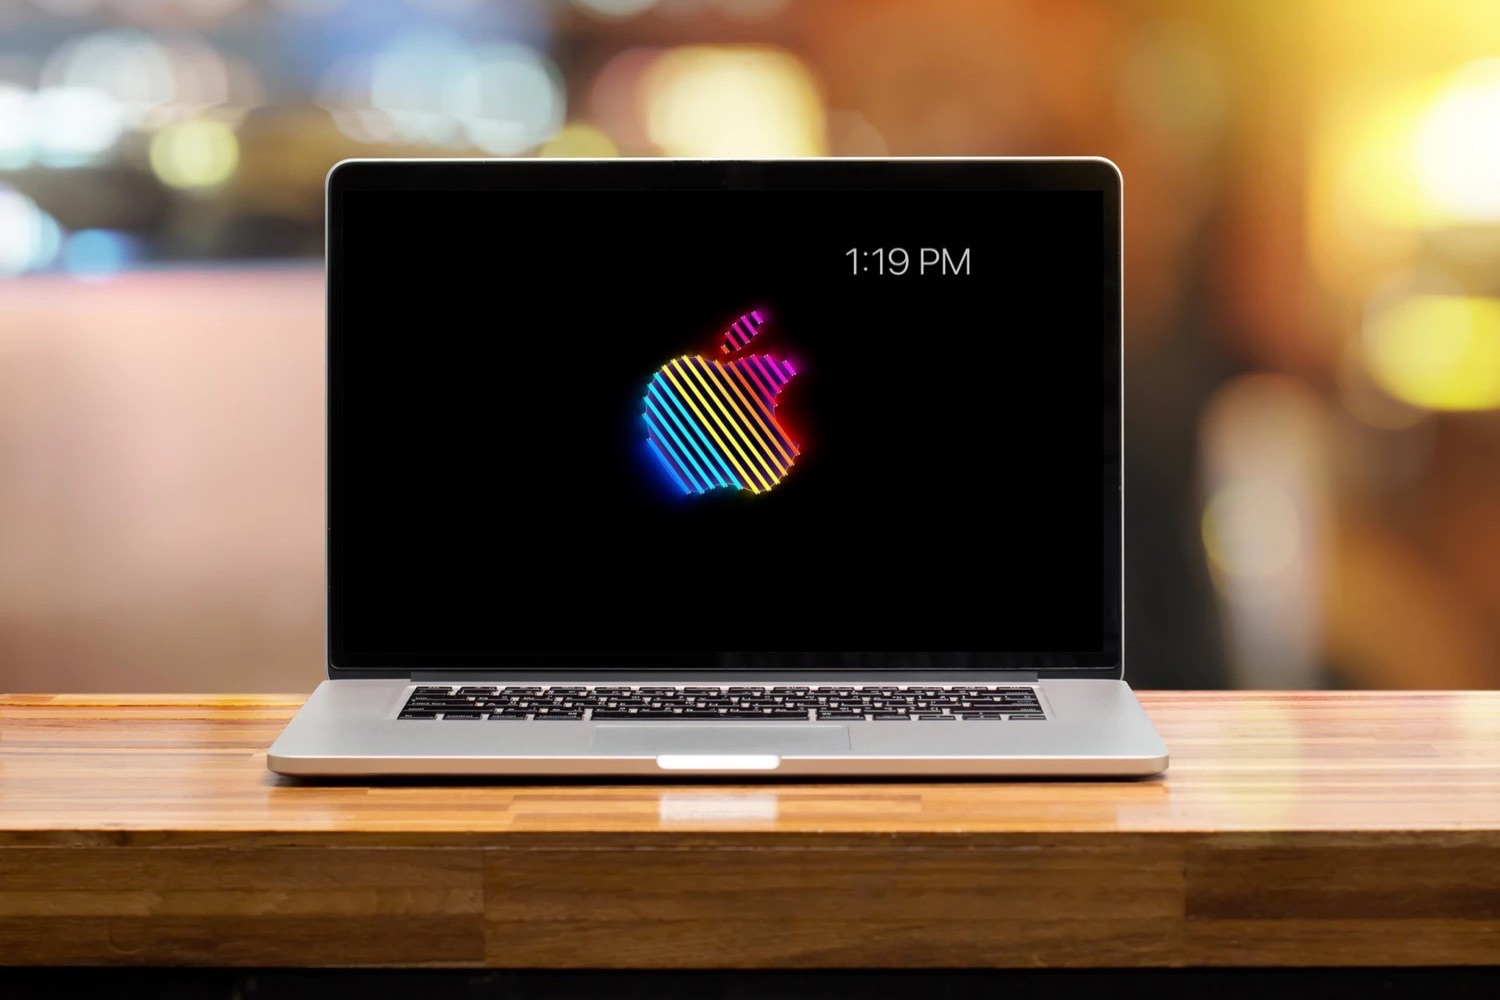 Apple Logo Animaties Als Screensaver Op Je Mac Zo Stel Je Het In